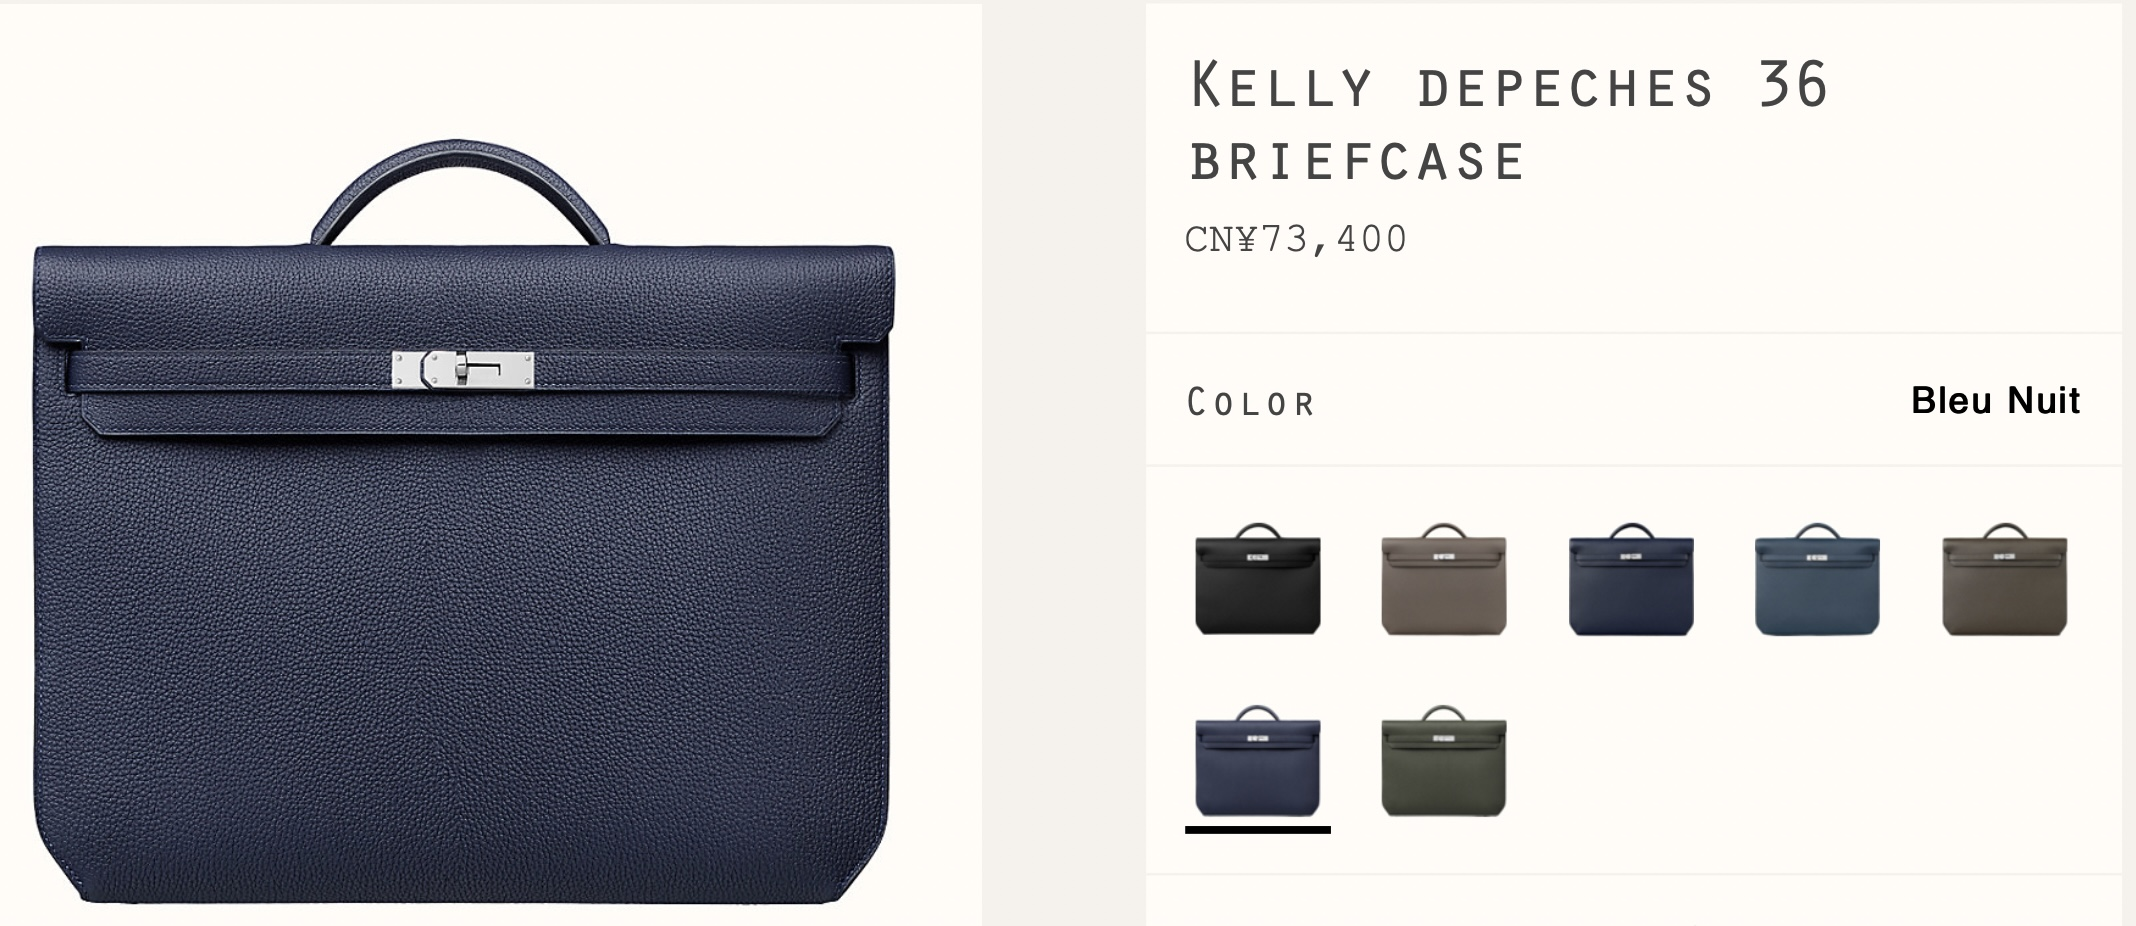 The many neutral colors of the Kelly Dépêches Briefcase. Photo via Hermes.com.